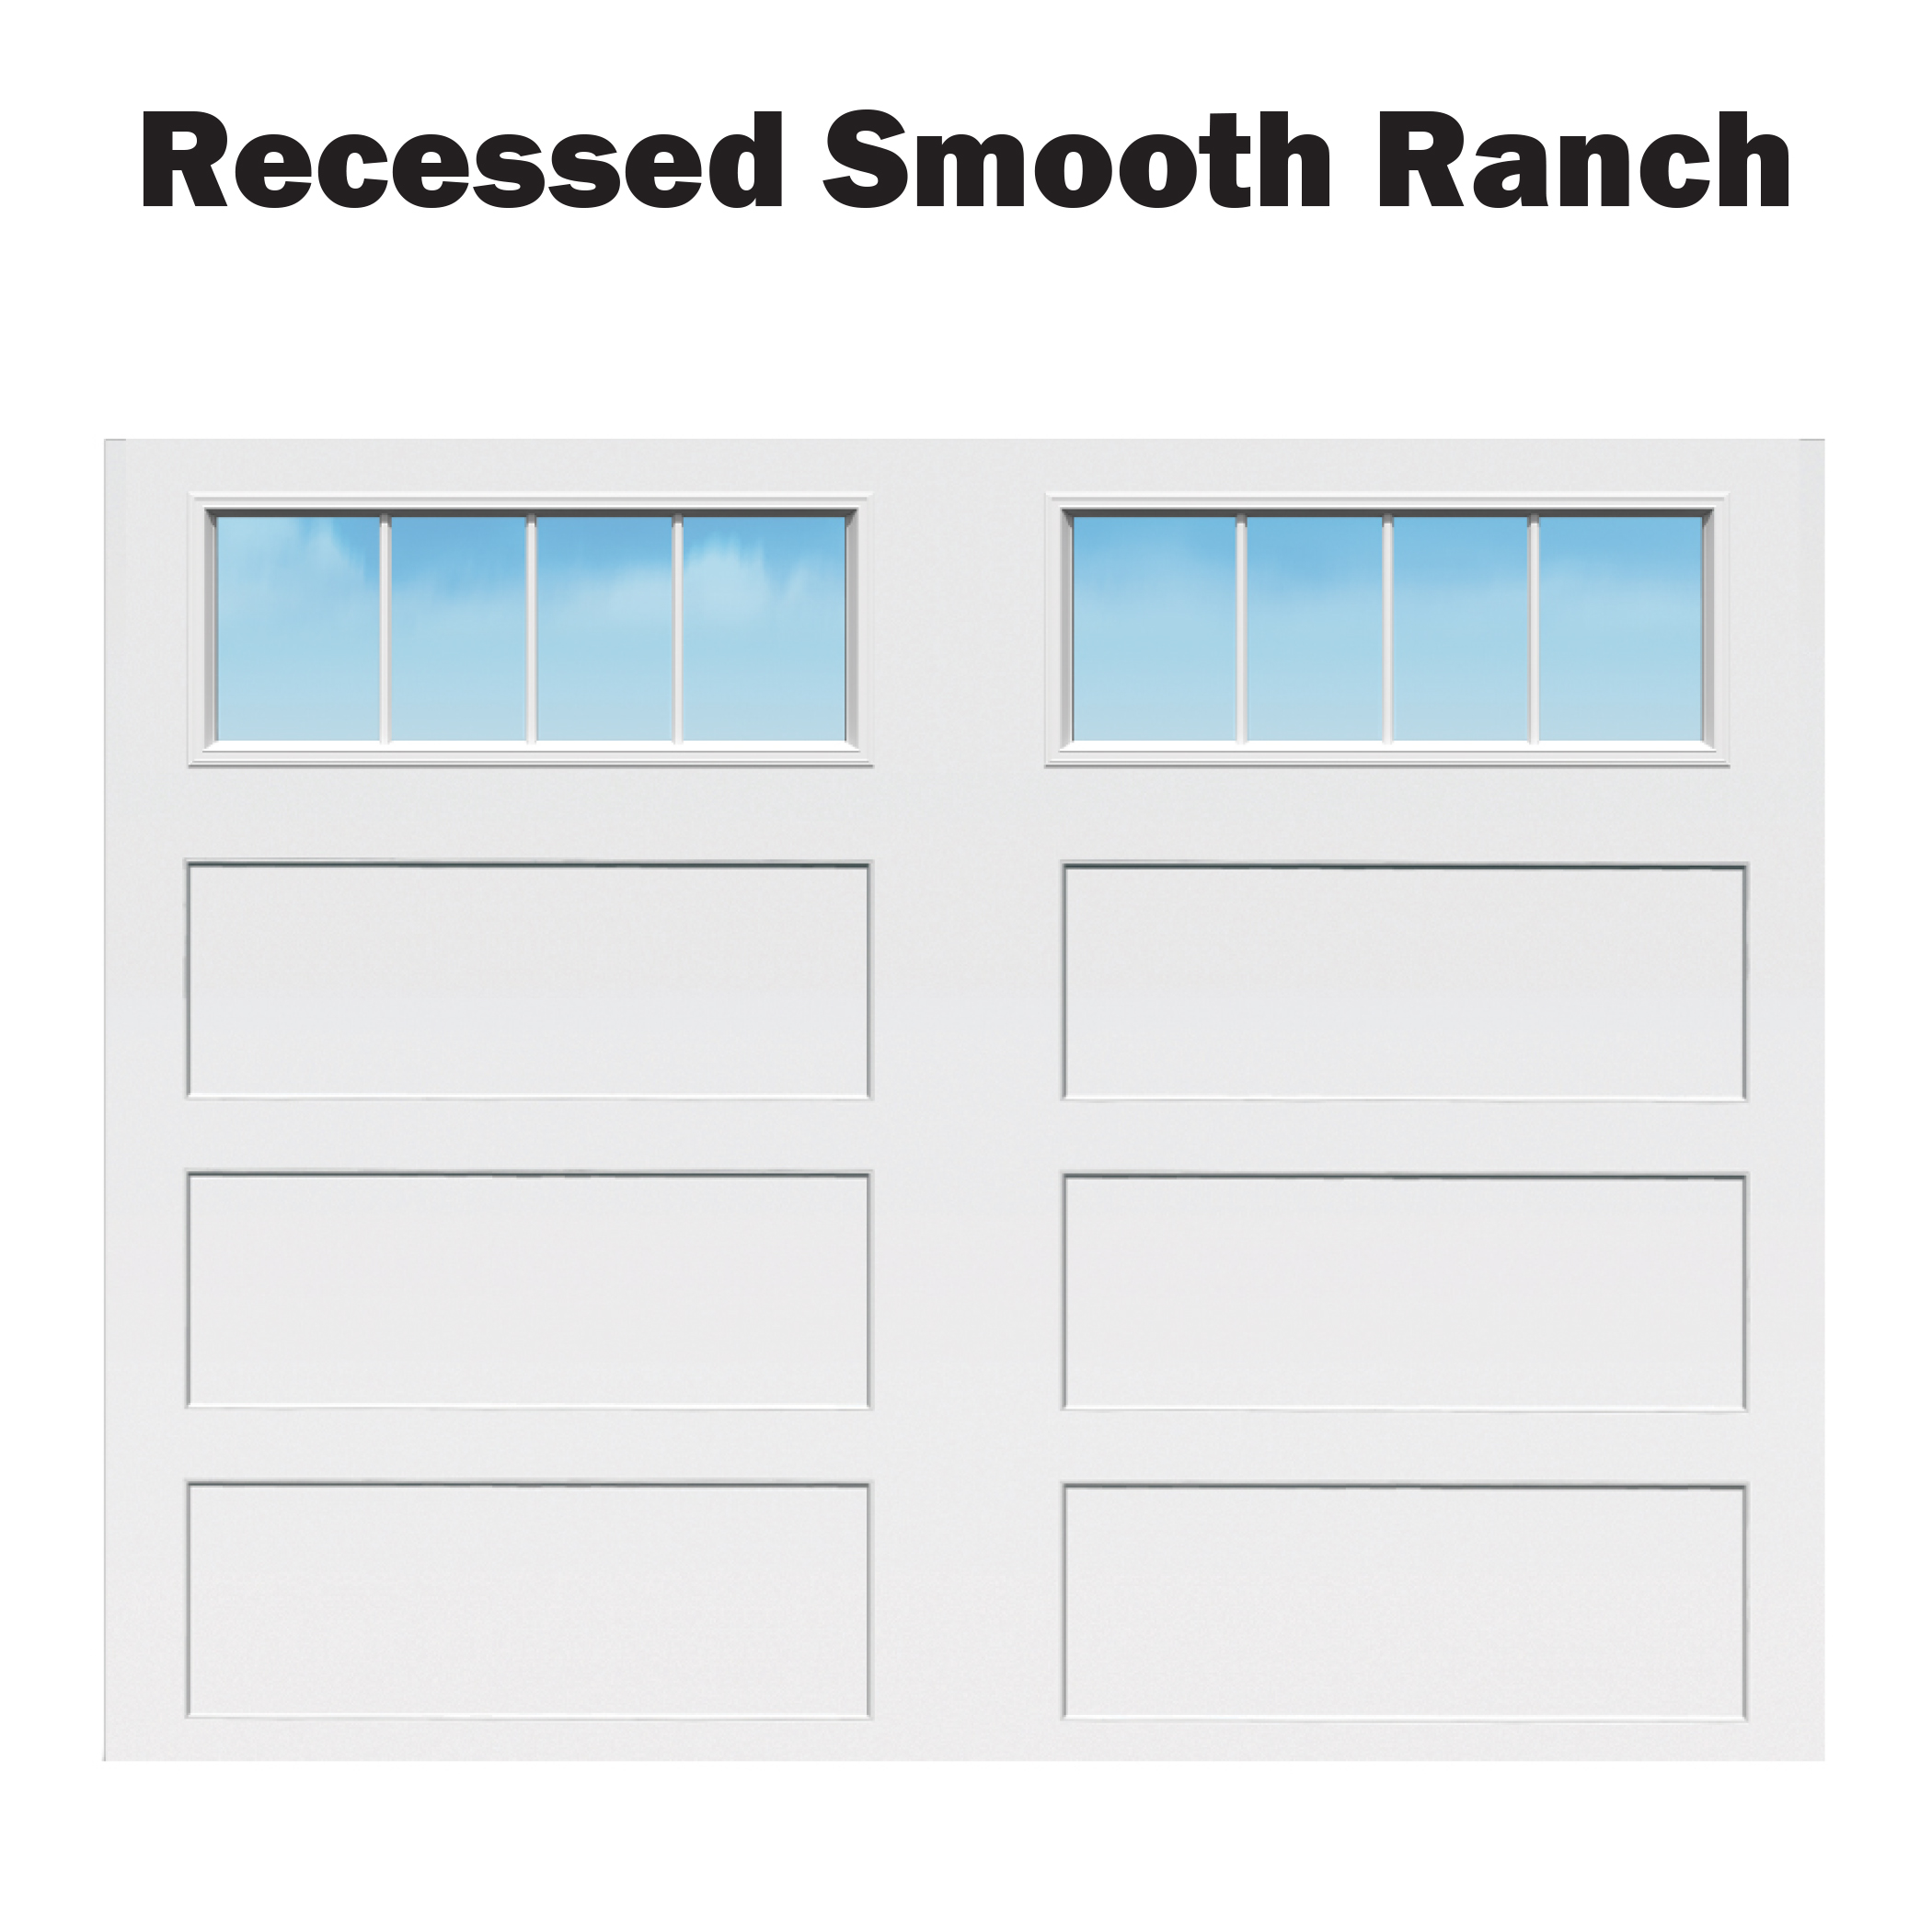 Recessed Smooth Ranch - Grandview.jpg